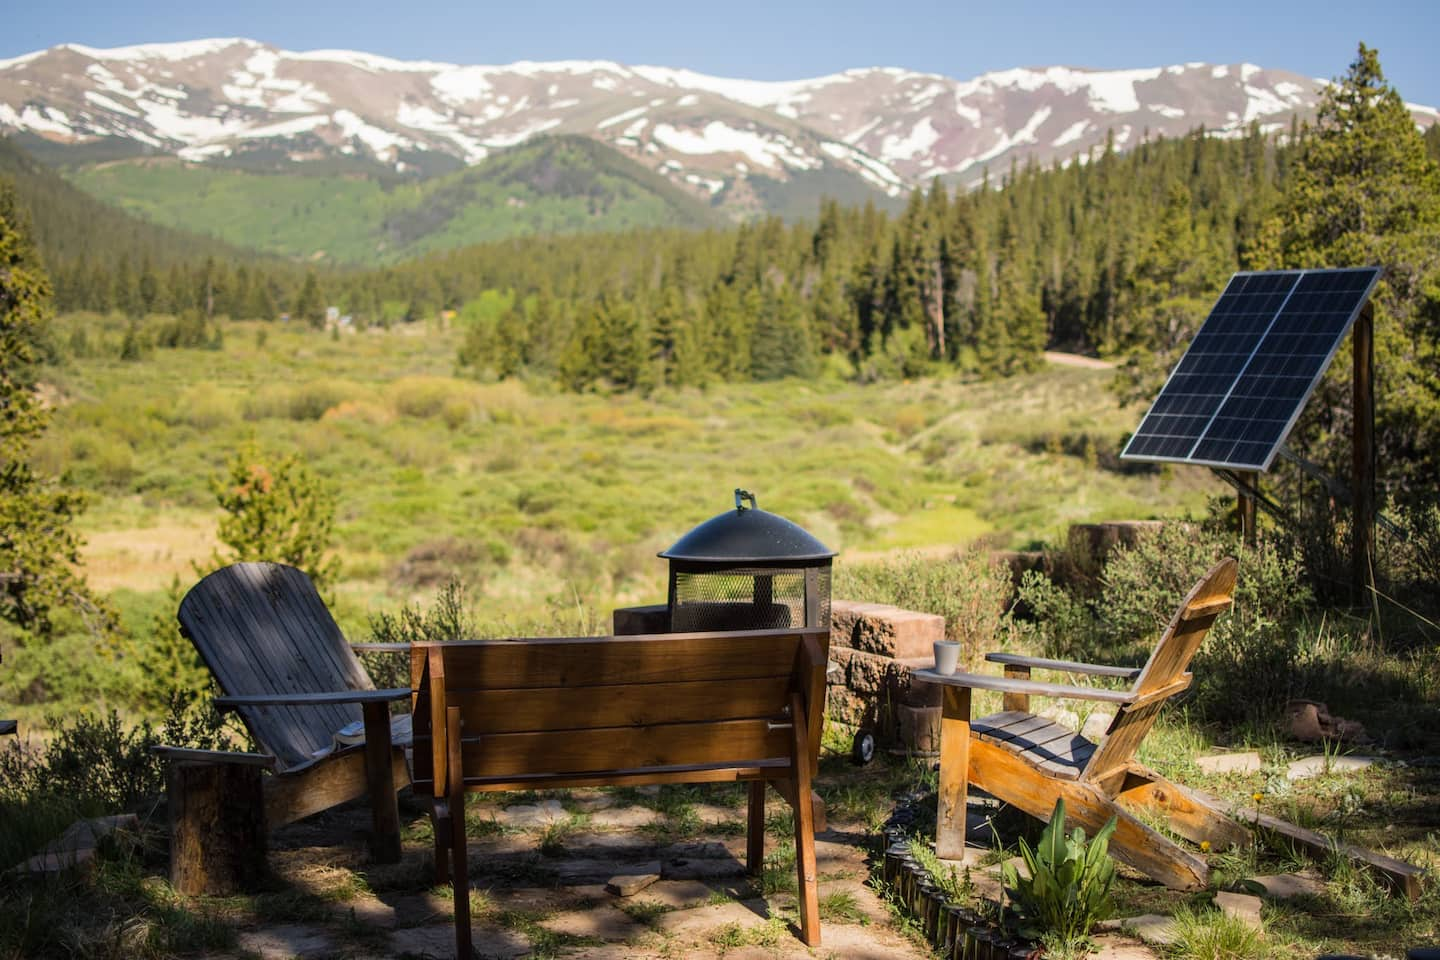 Tiny Cabin Glamping- Best Airbnb ColoradoTiny Cabin Glamping- Best Airbnb Colorado